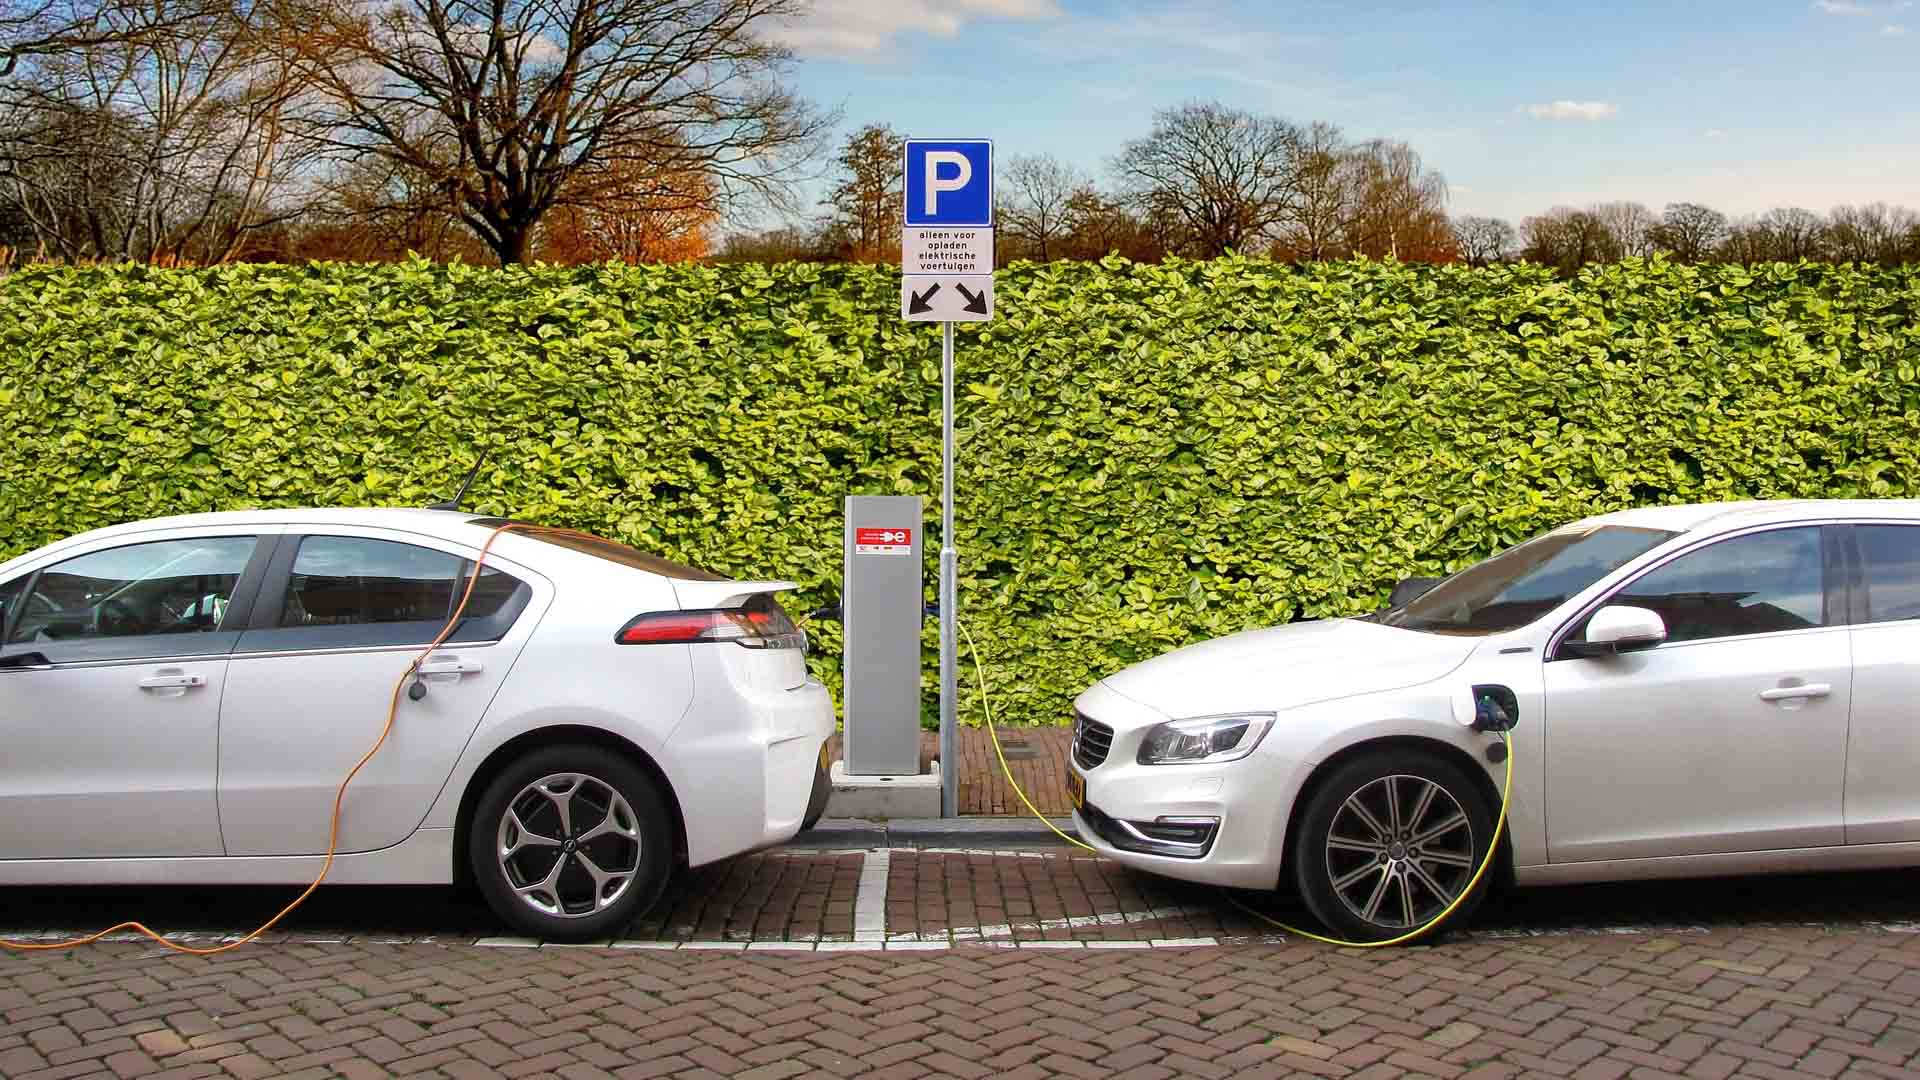 Pilot project on e-cars to support grid stability